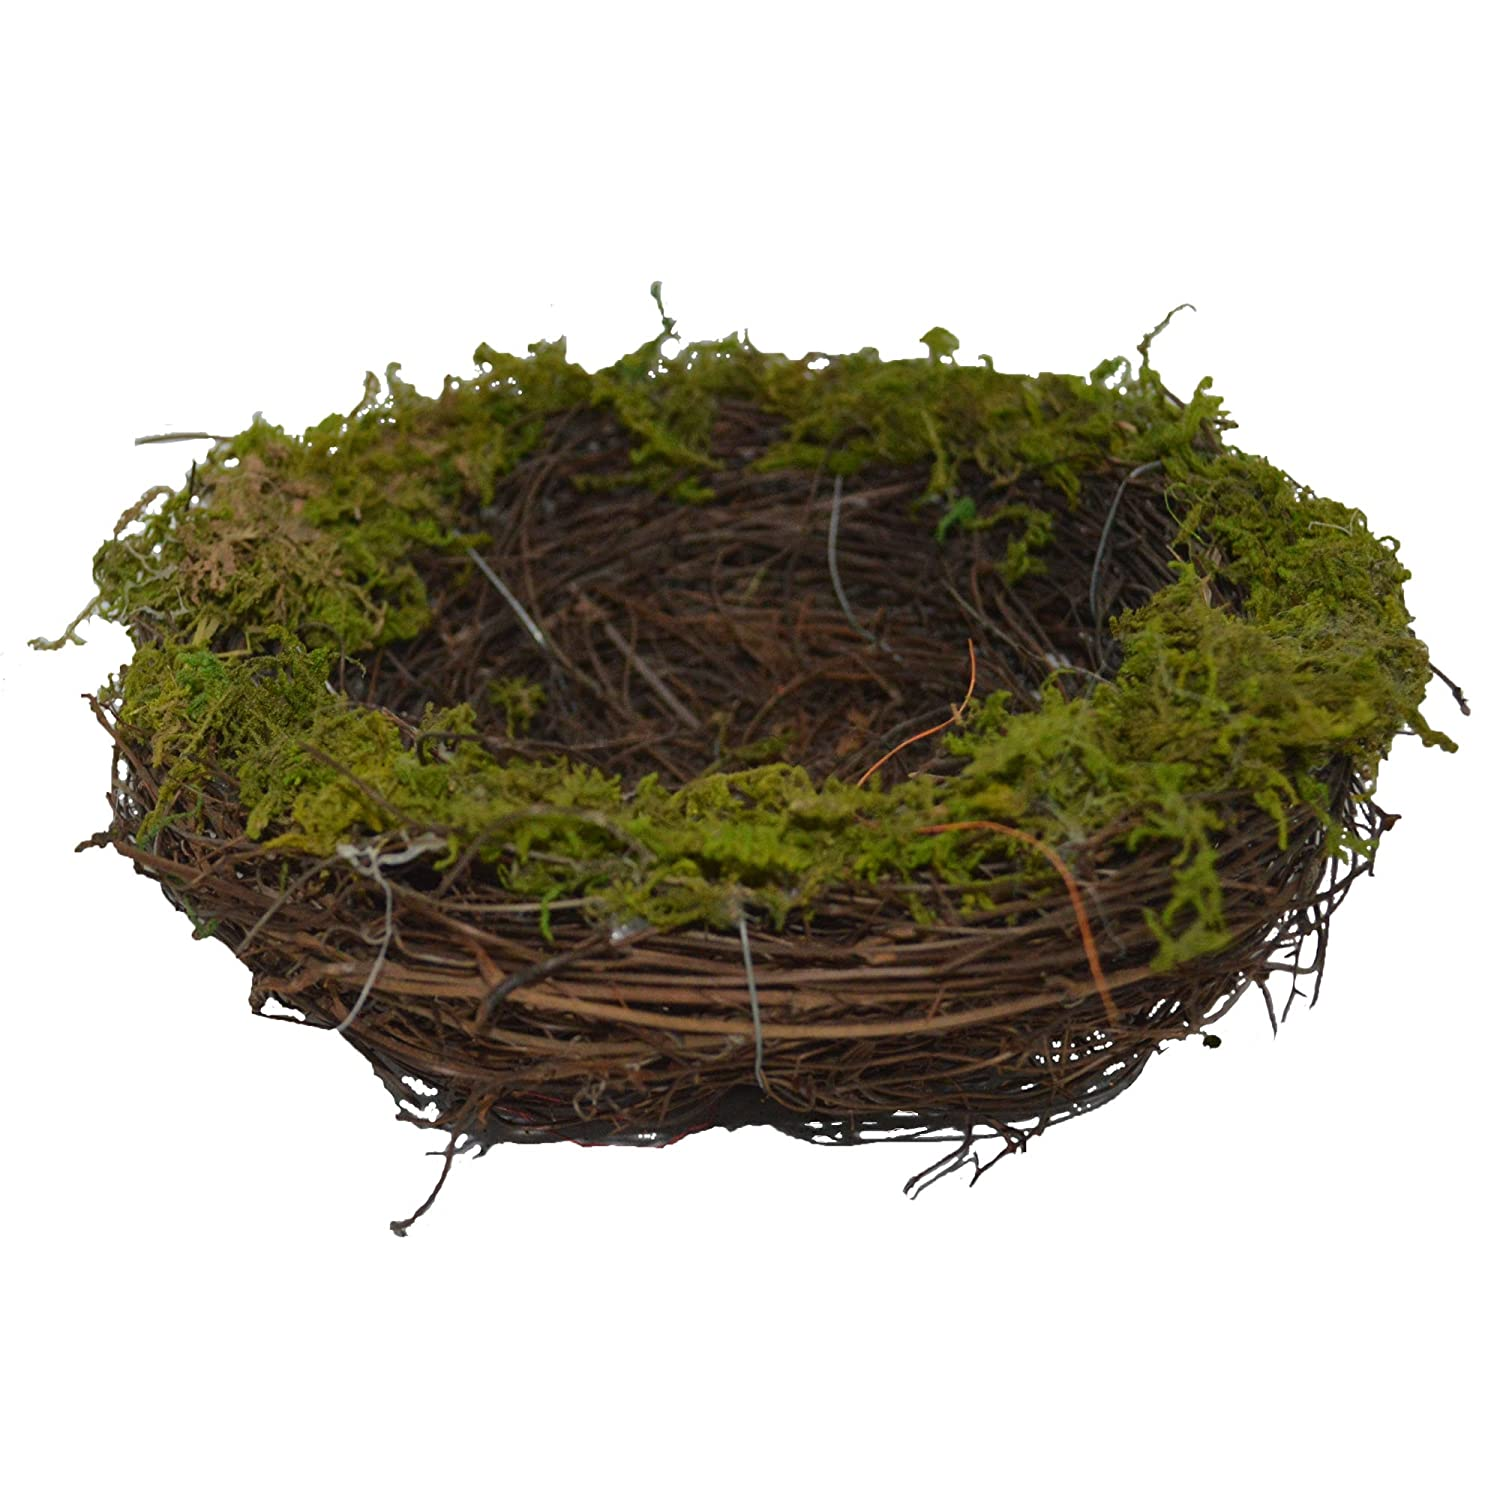 Emlyn Easter Artificial One Faux Natural Moss, Rattan and Twig Bird's Nest for Arts and Crafts